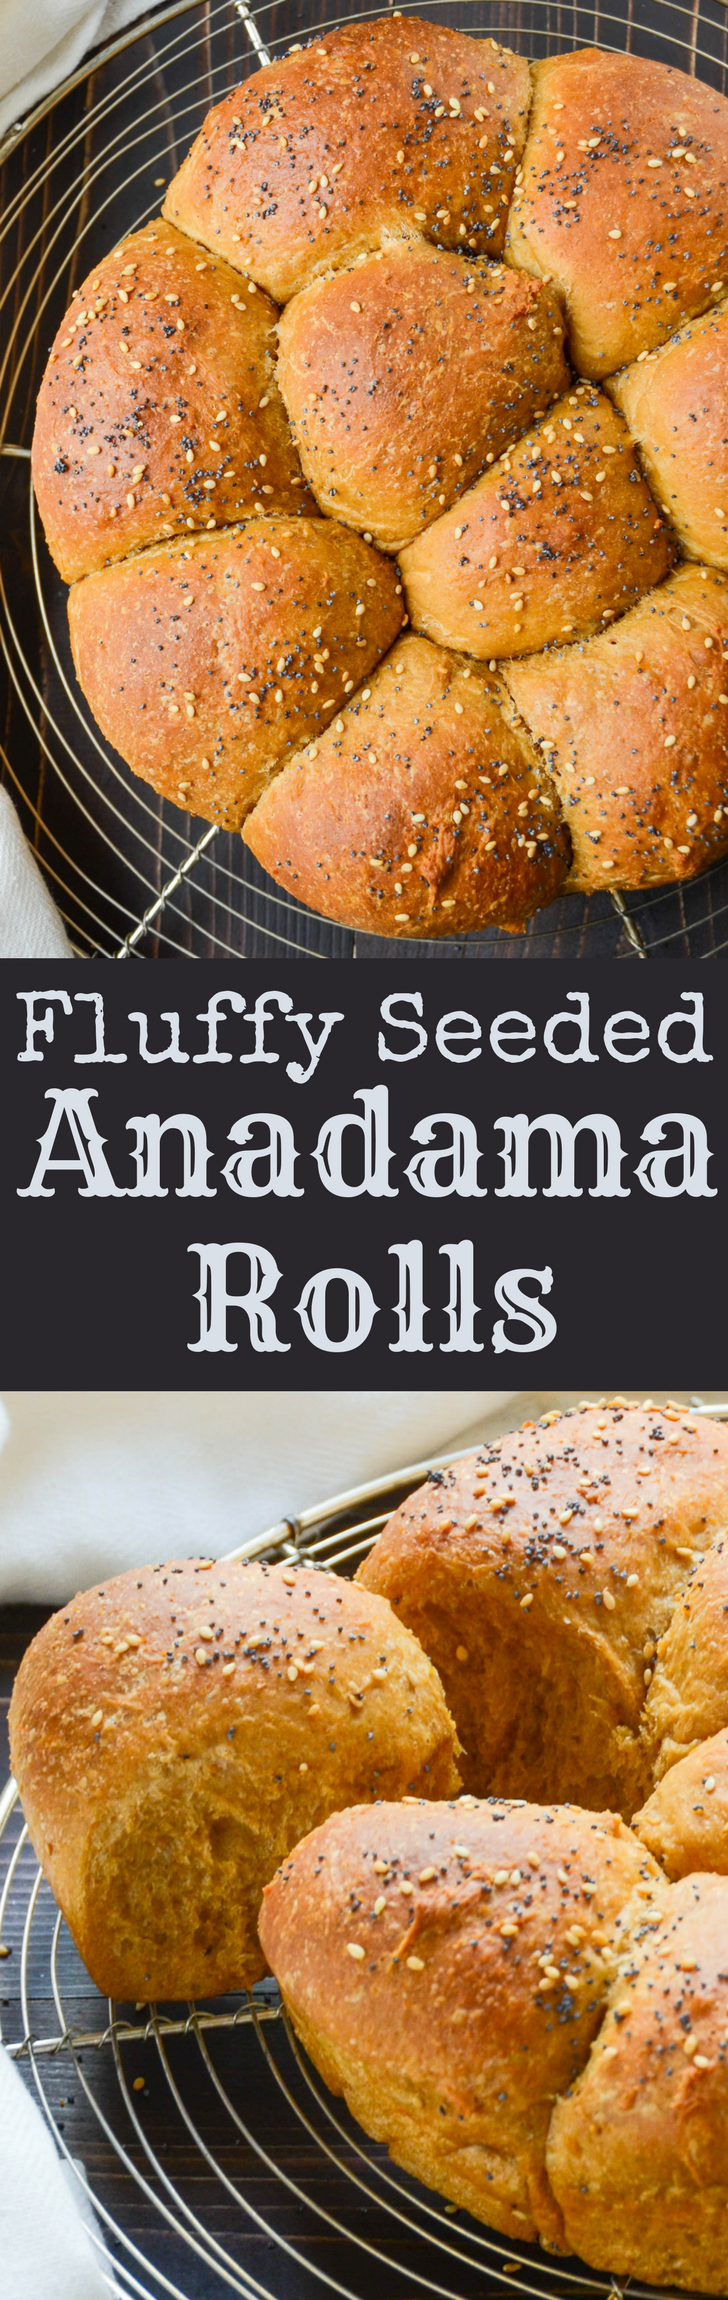 This easy yeast roll recipe feeds a crowd!  These soft, fluffy Anadama Rolls are great for sopping up gravy at your next holiday table. Makes 2 dozen rolls.